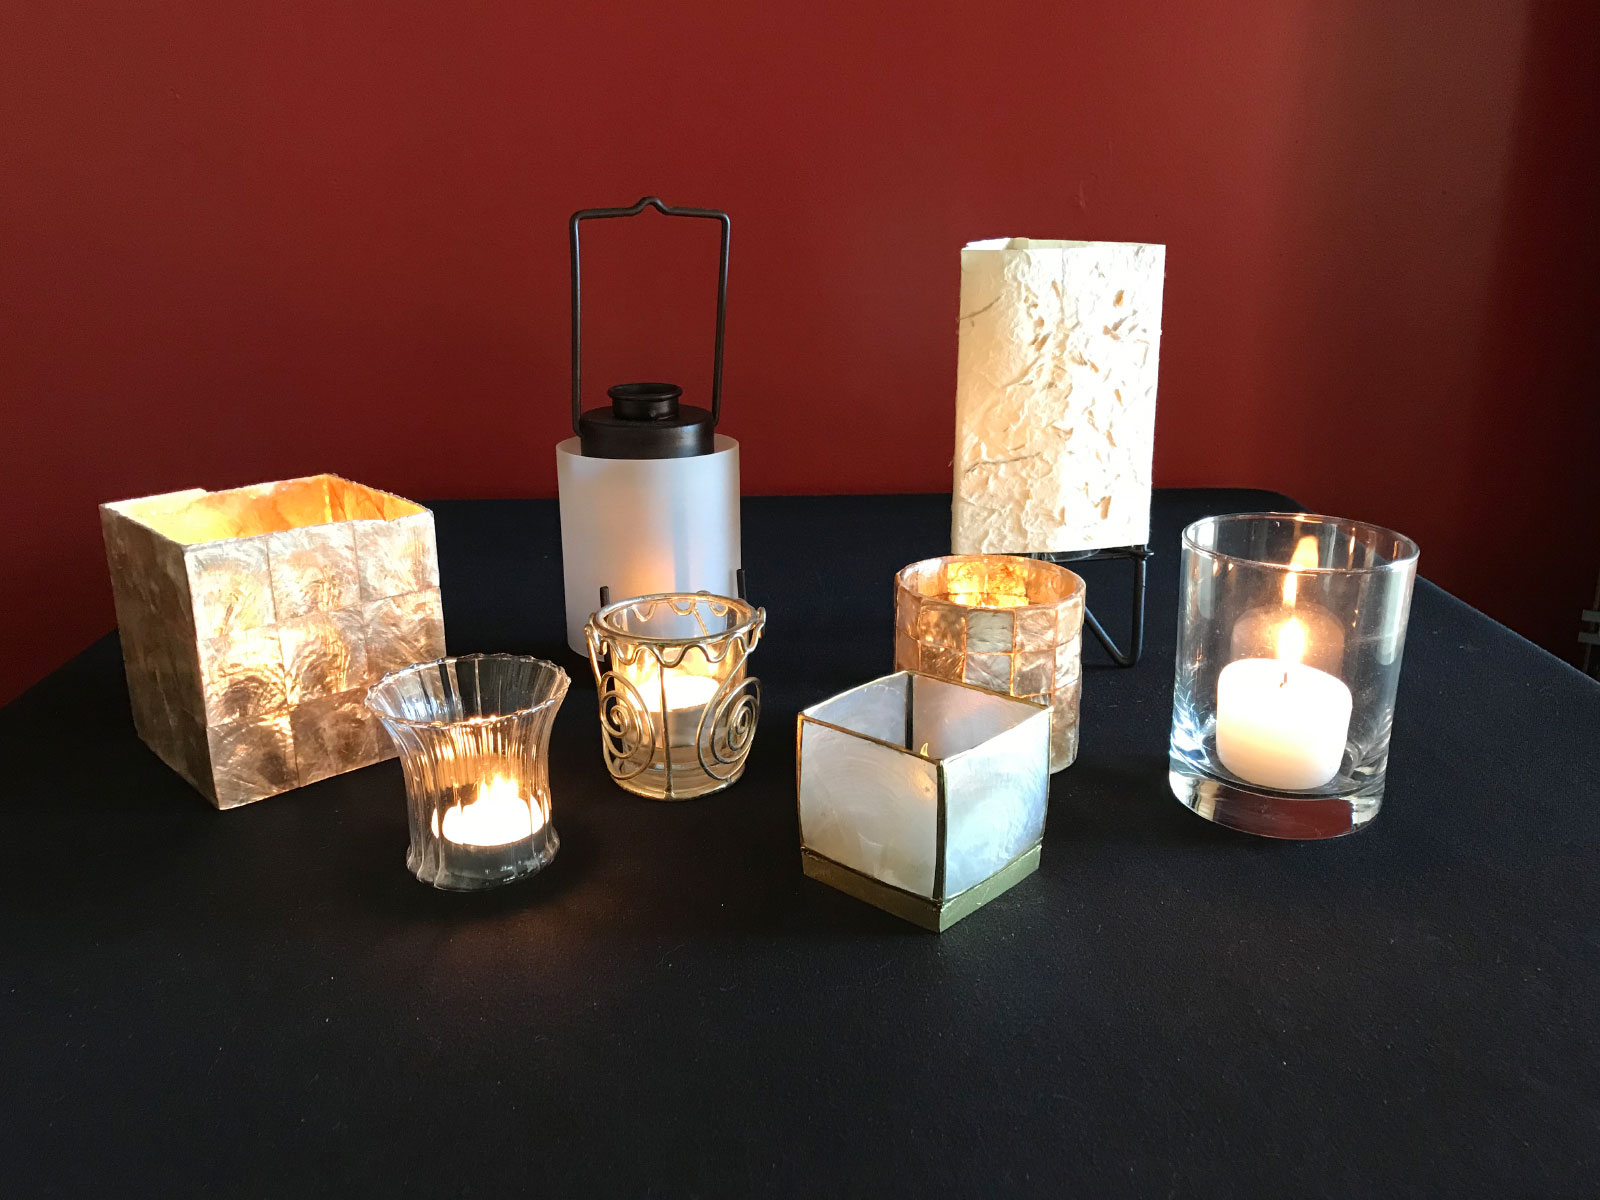 Sets of candles, star decorations and lamp centerpieces